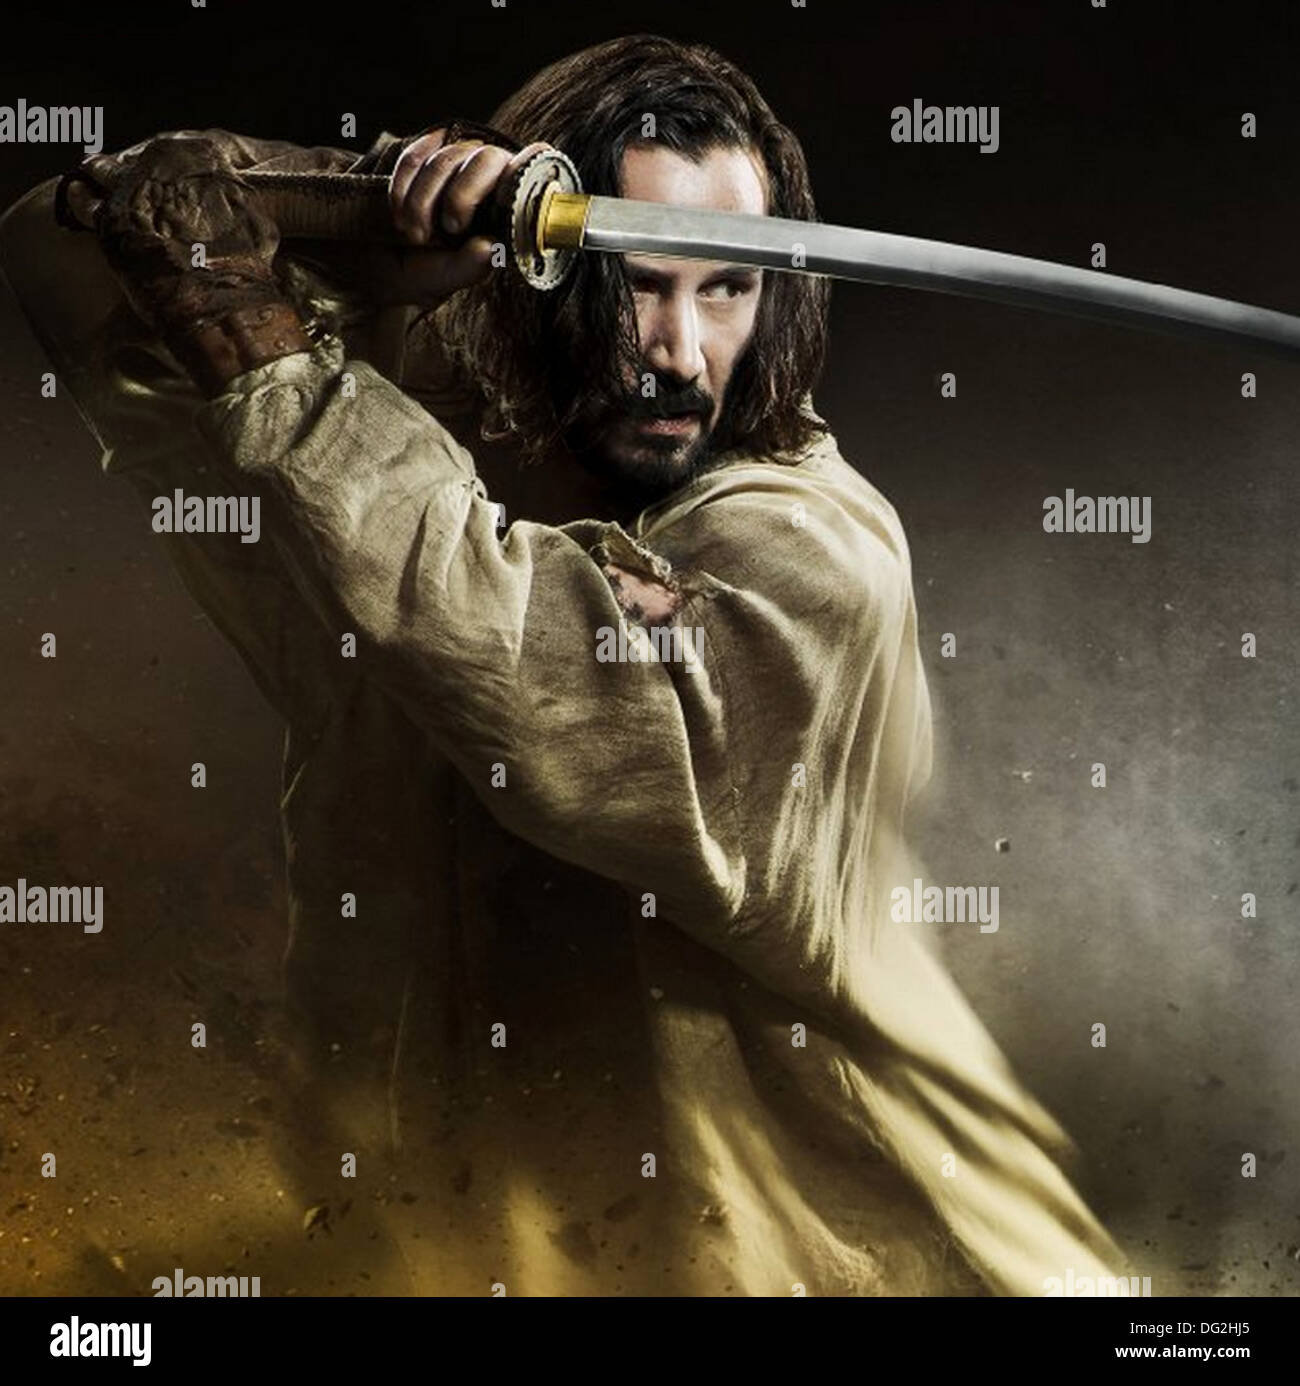 47 RONIN   2013 Universal Pictures film with Keanu  Reeves - Stock Image